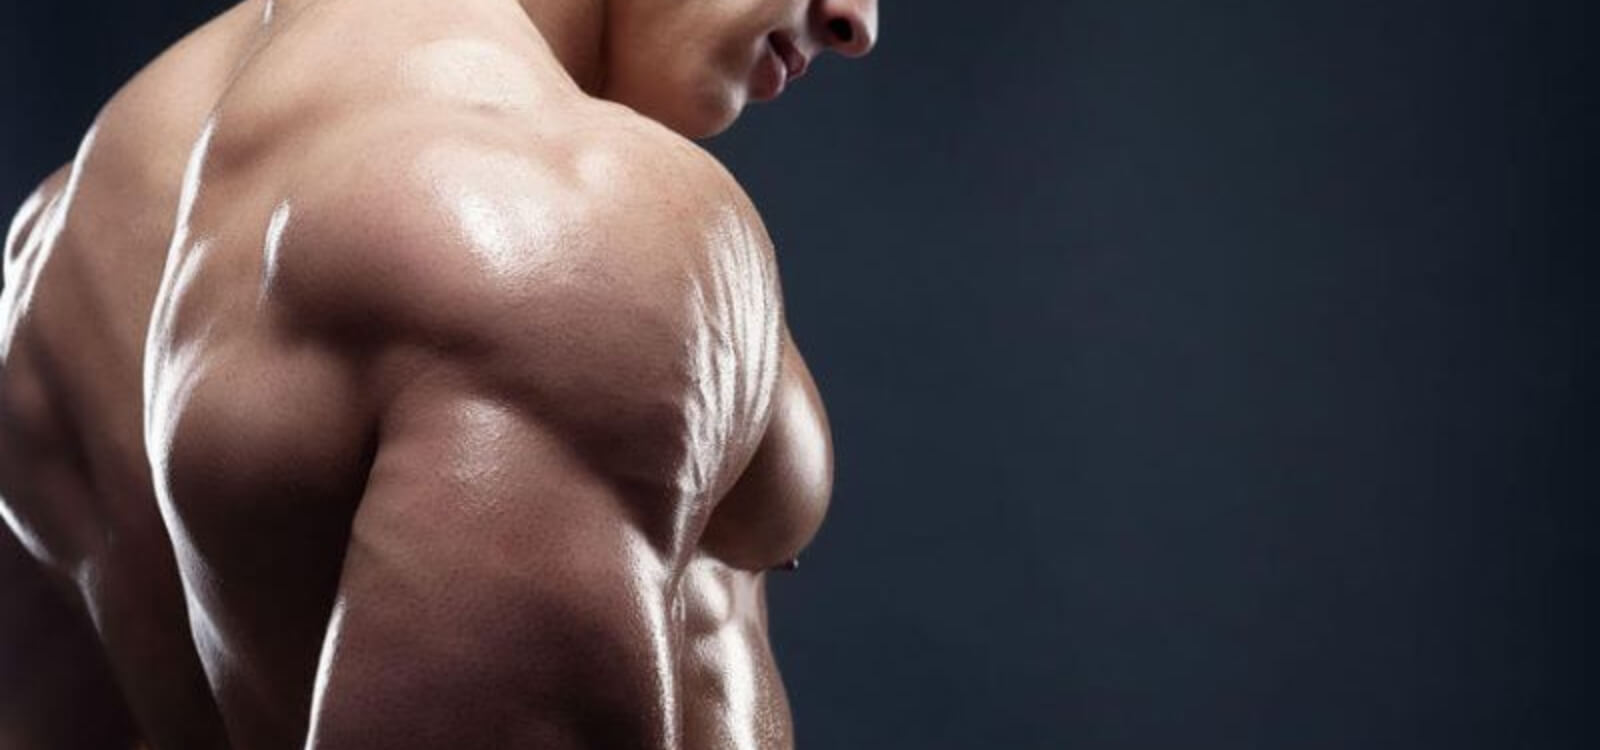 bodyweight workout routine for mass and strength